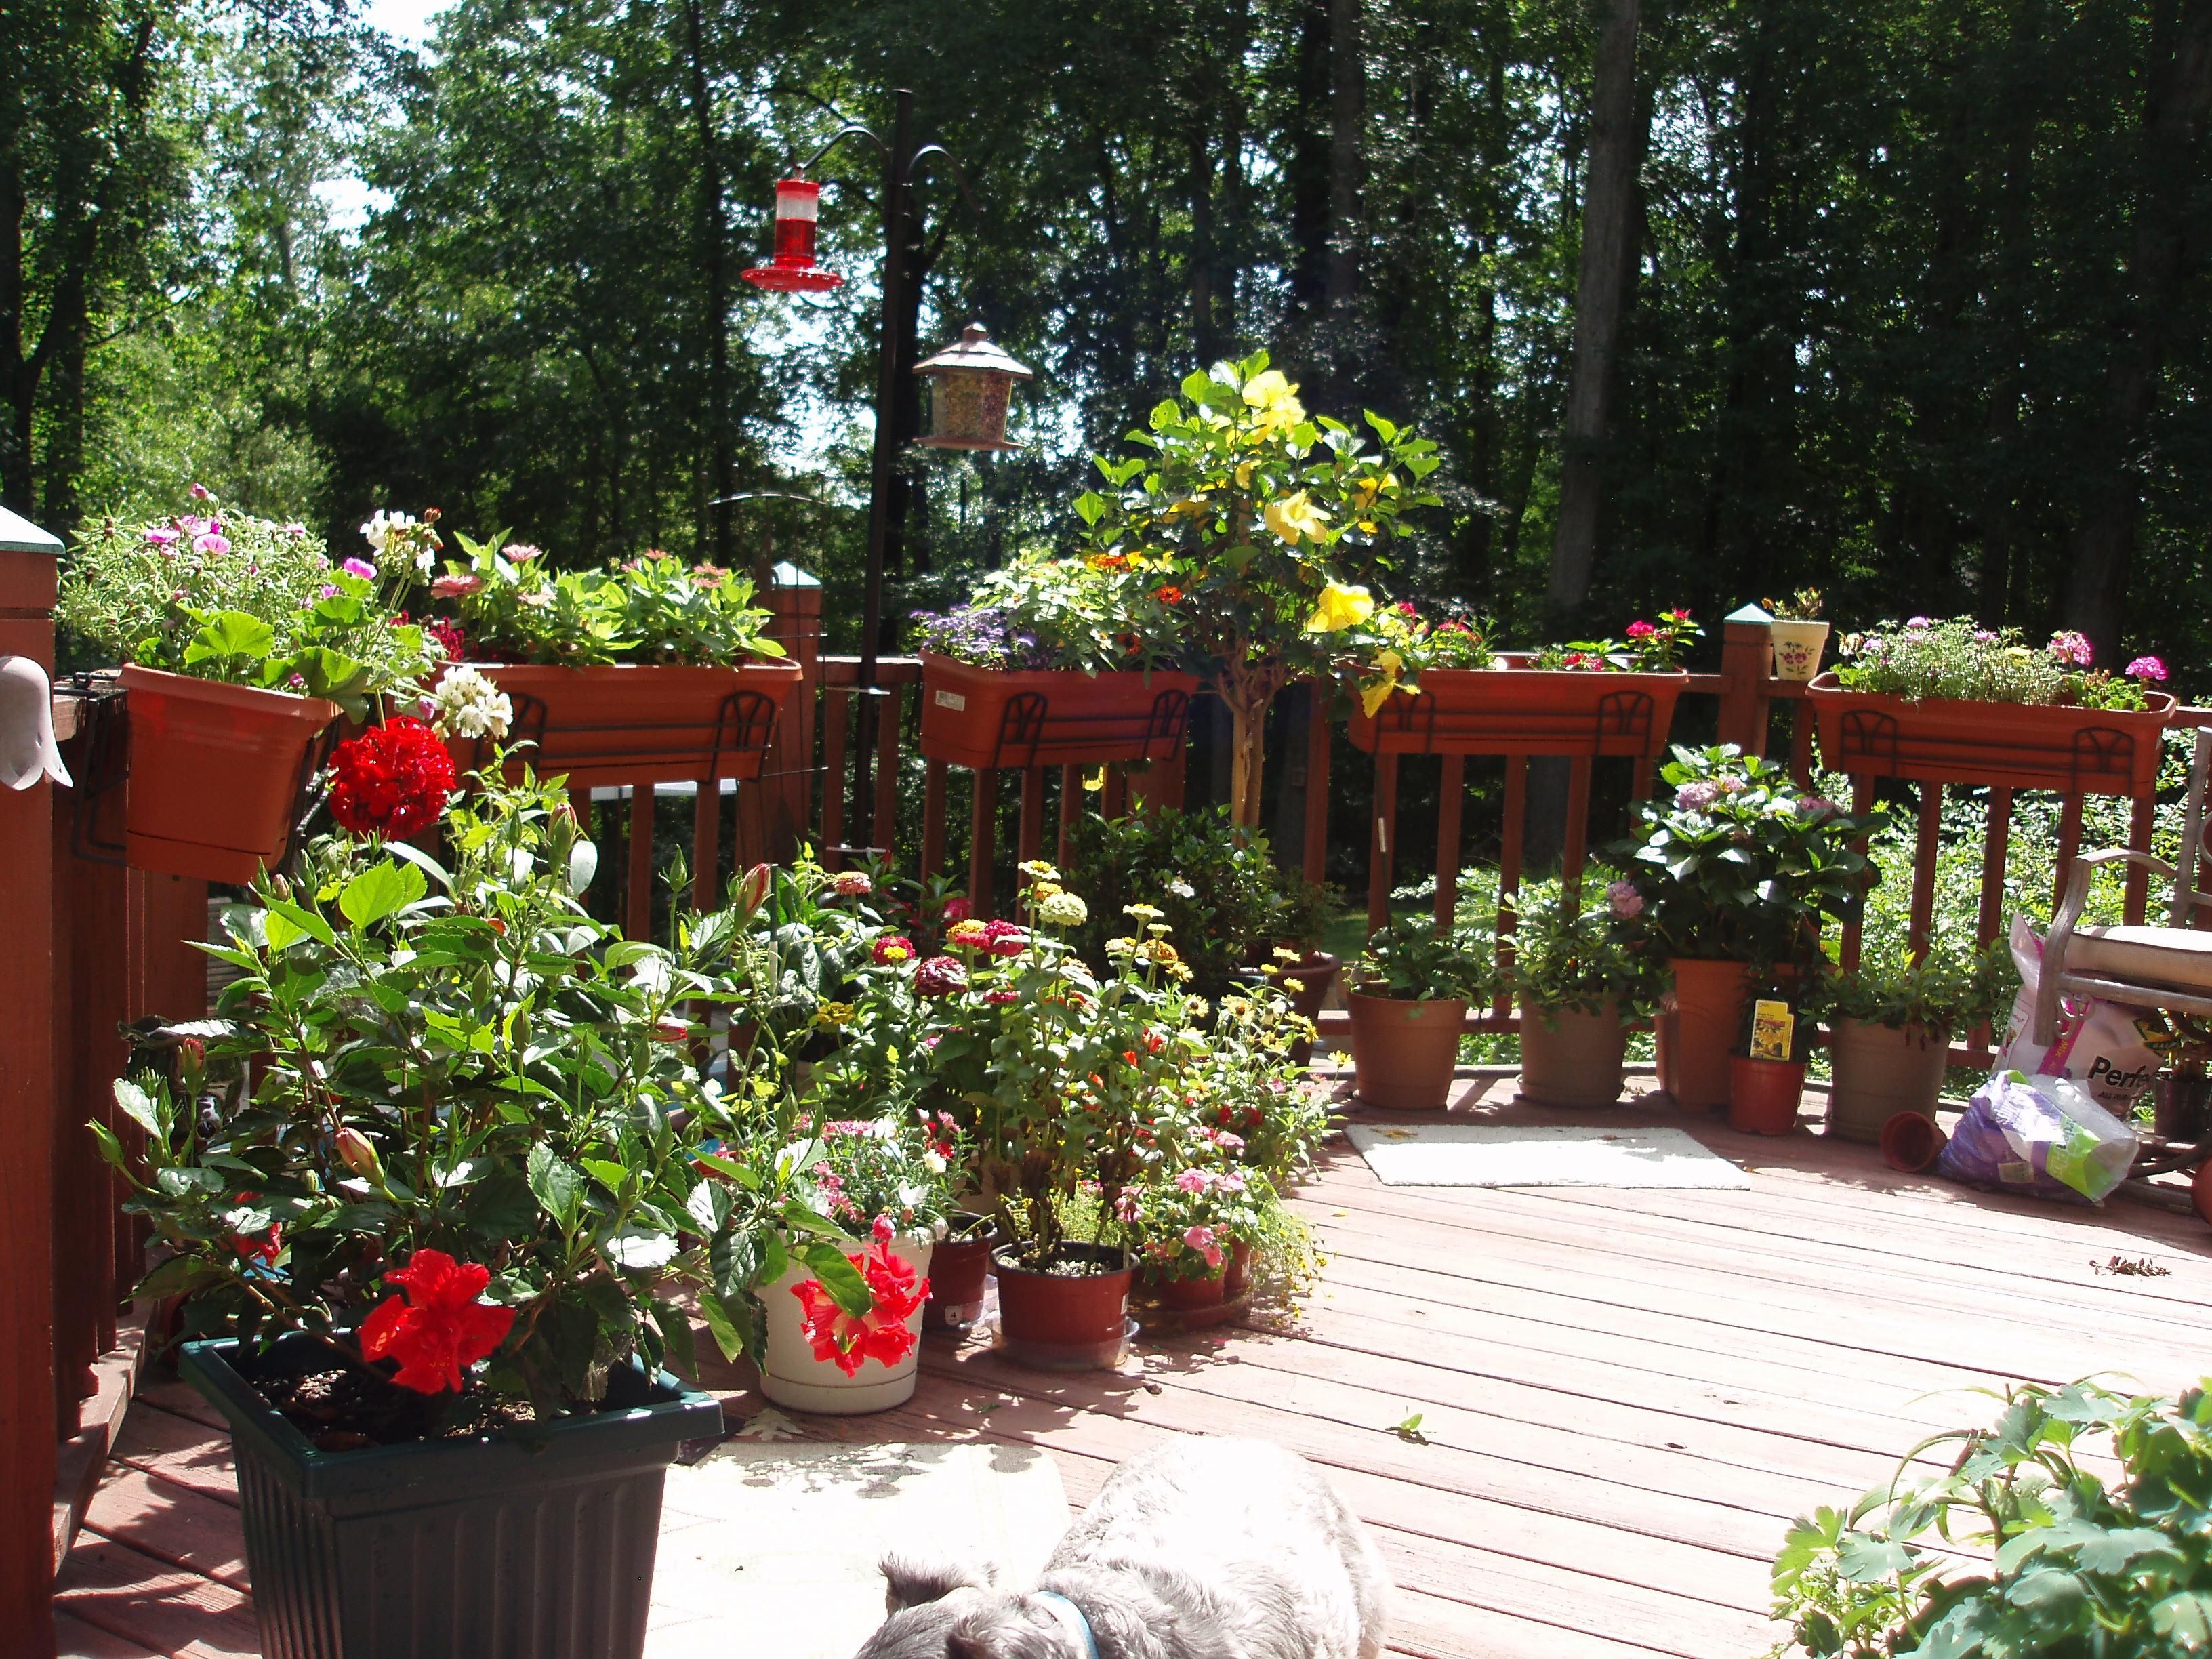 Amazing I Love Container Gardening On The Deck!Tips On Gardening In A Small Space  And Attracting Beautiful Birds And Butterflies. Distractions For The Kitty.